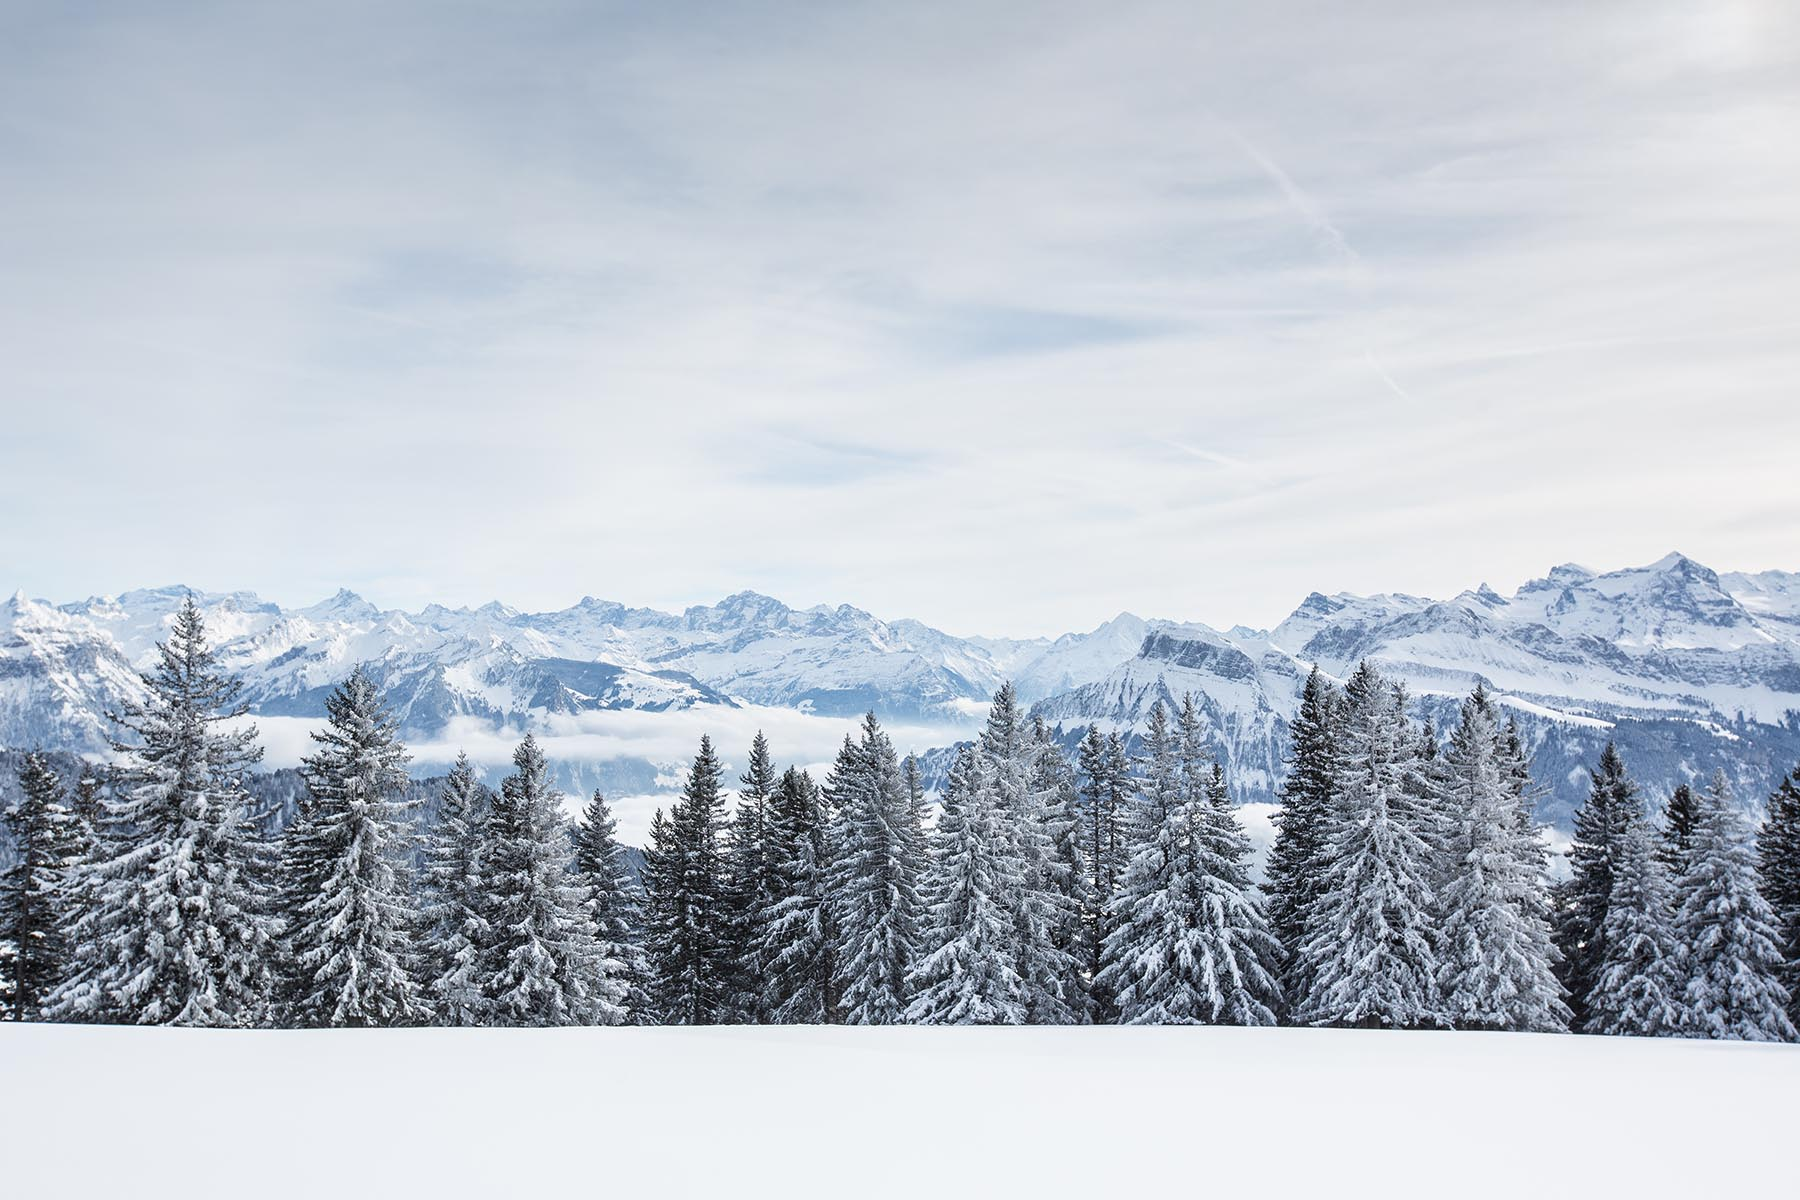 Splendid Winter Alpine Scenery With High Mountains And Trees Cov